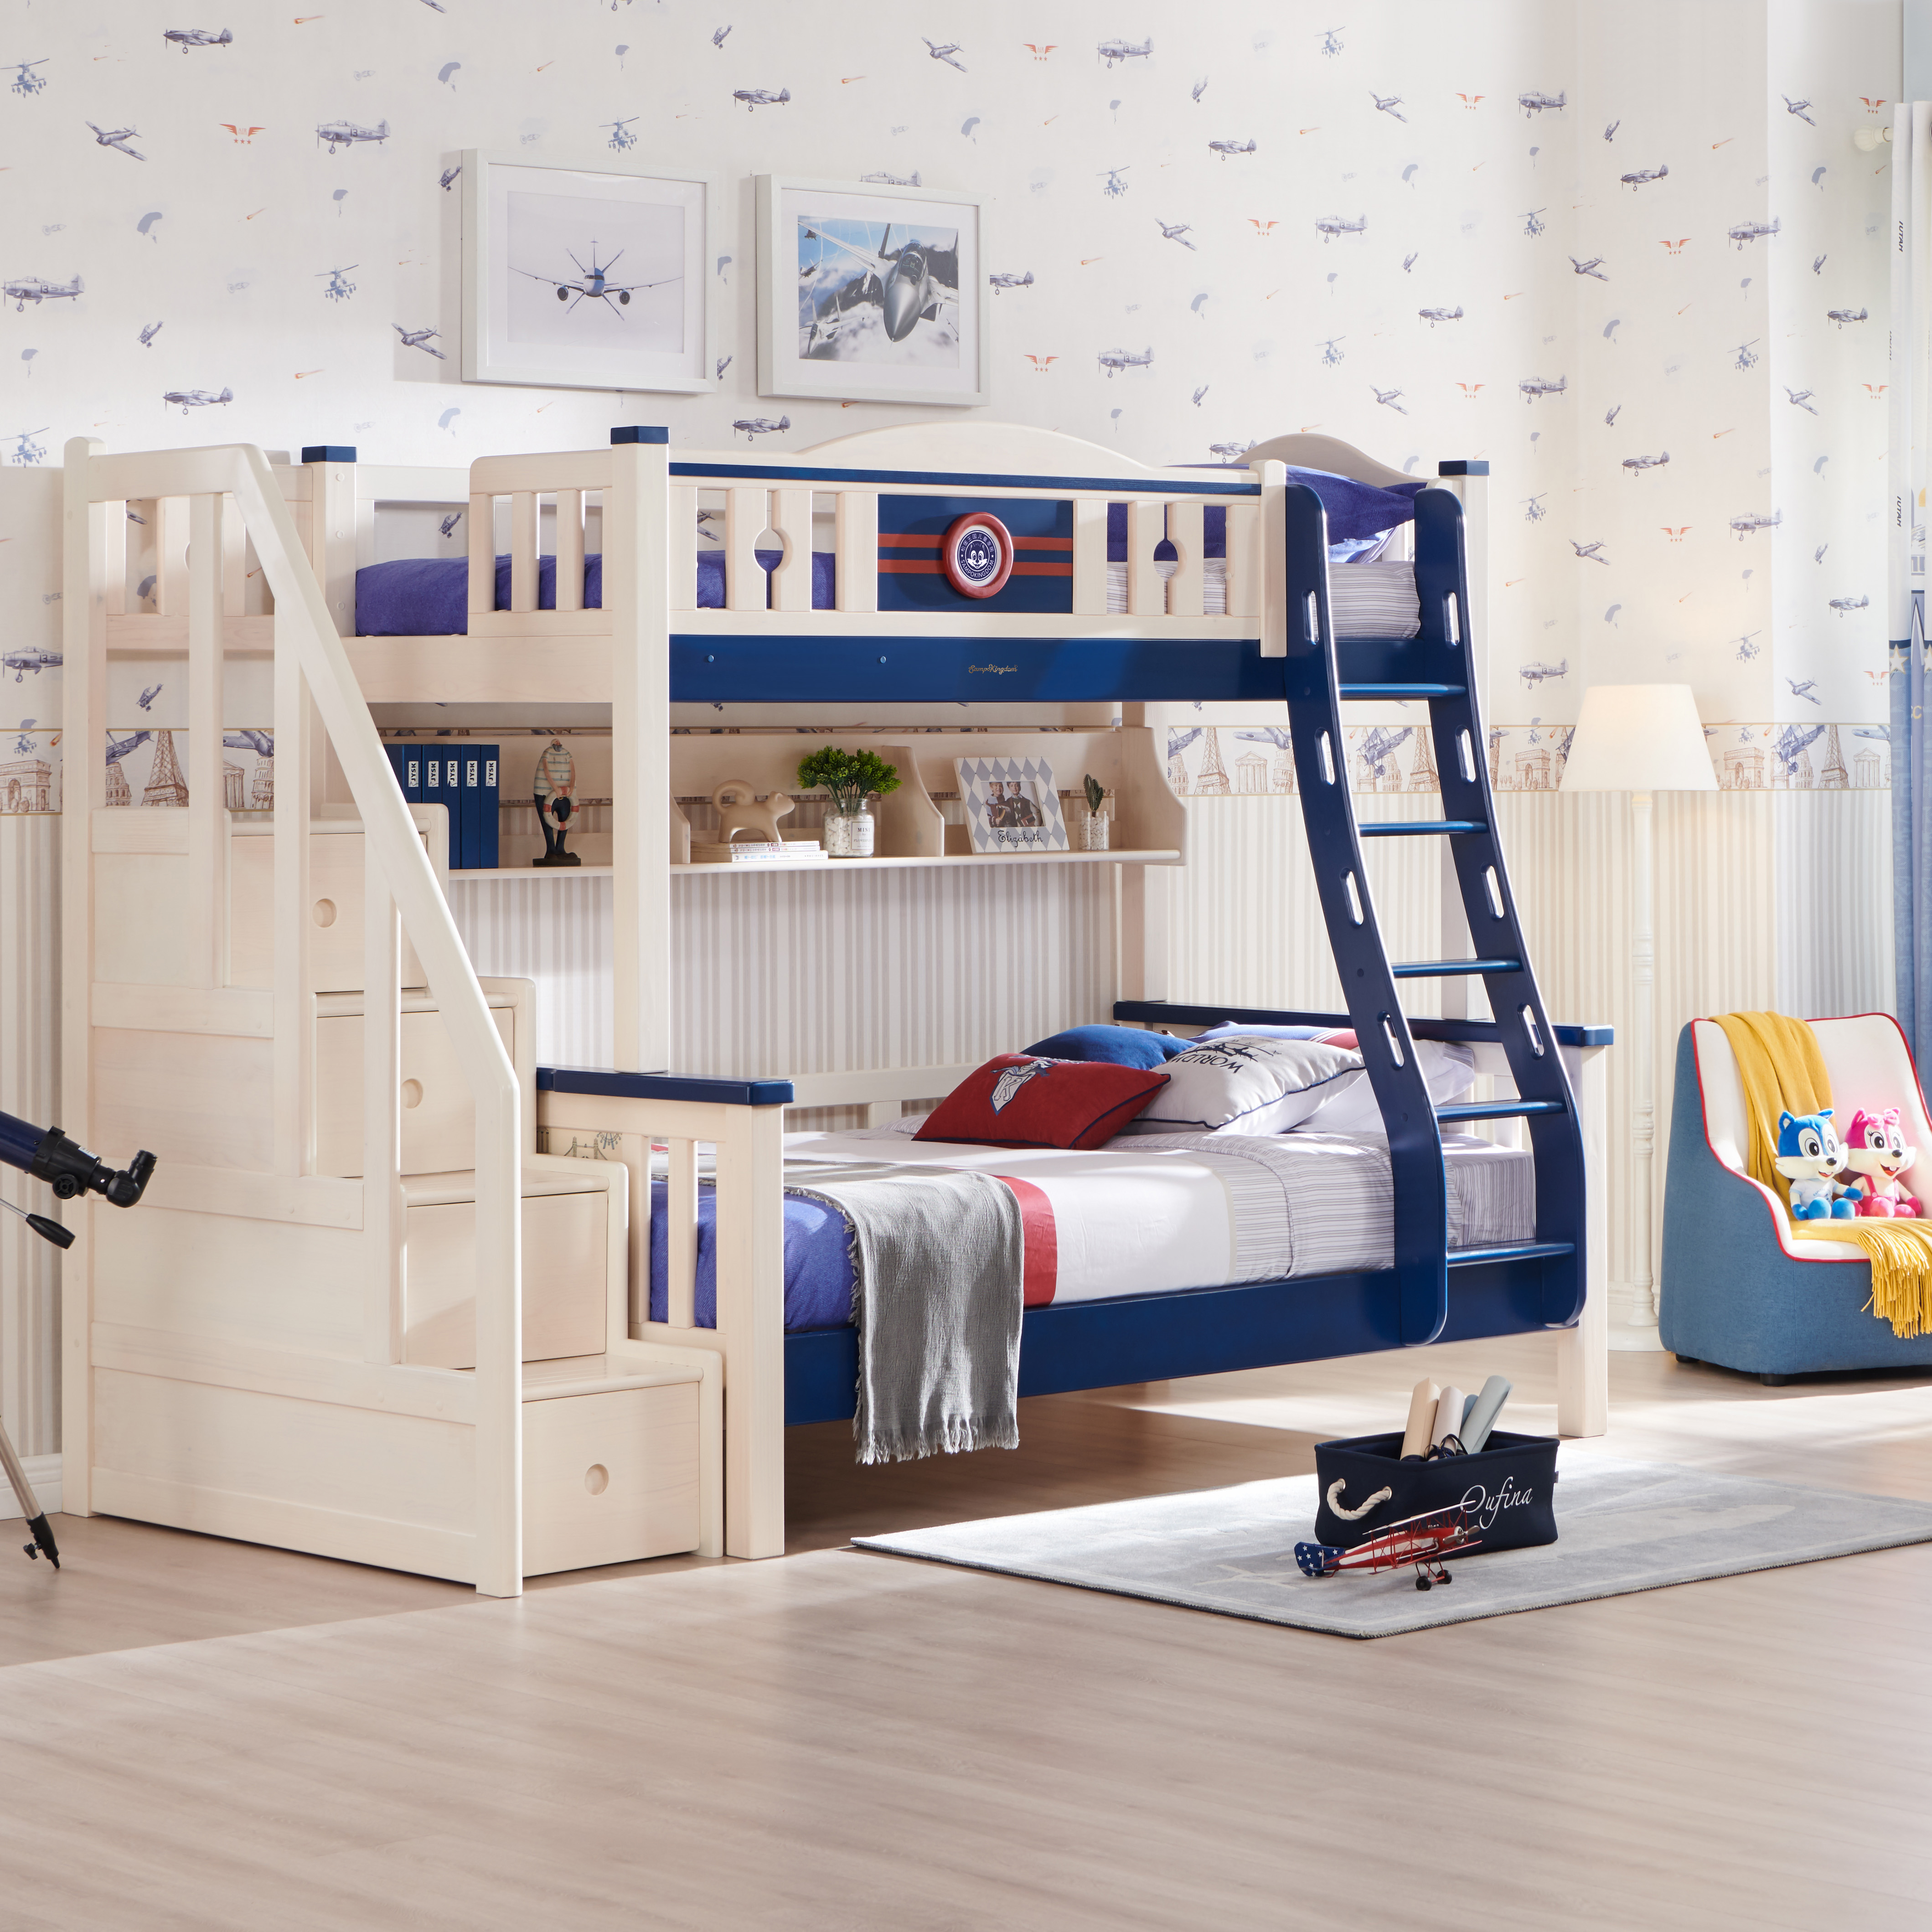 Twin Size Loft Kids Wooden Children Princess Bunk Bed With Stairs Buy Twin Size Loft Kids Wooden Children Princess Bunk Bed With Stairs Colorful Child Bunk Bed Funky Bunk Beds Product On Alibaba Com